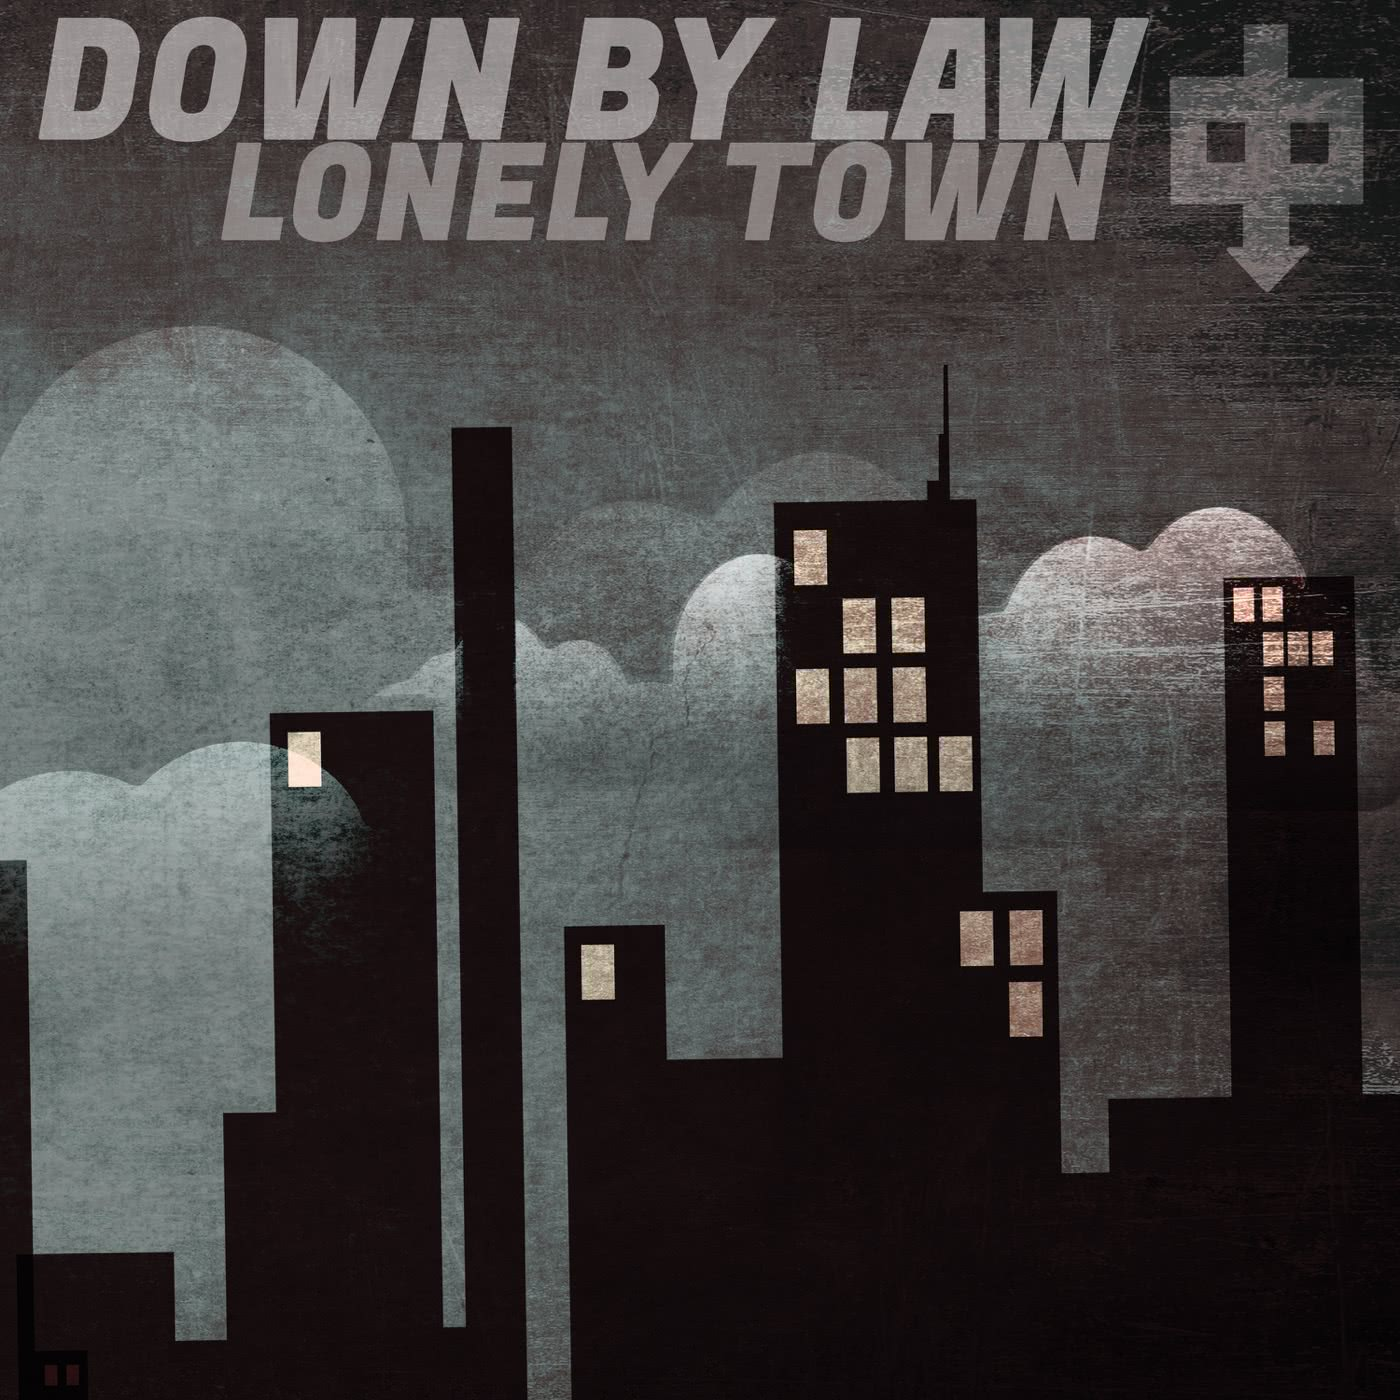 Down By Law - Lonely Town (2021)